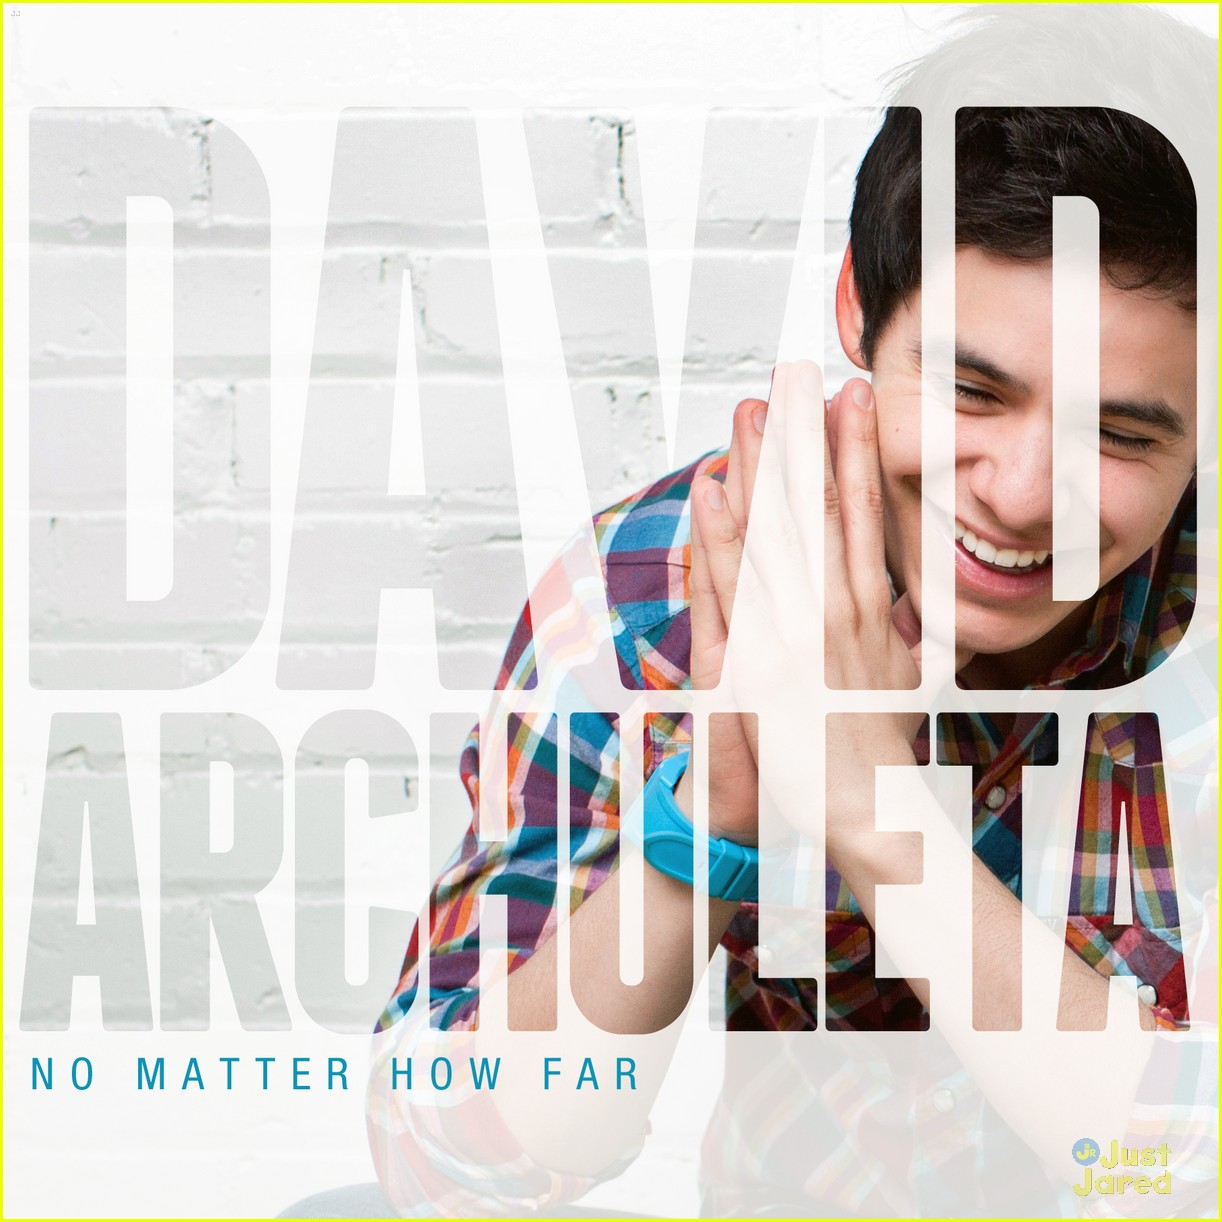 david archuleta no matter how far cover 01